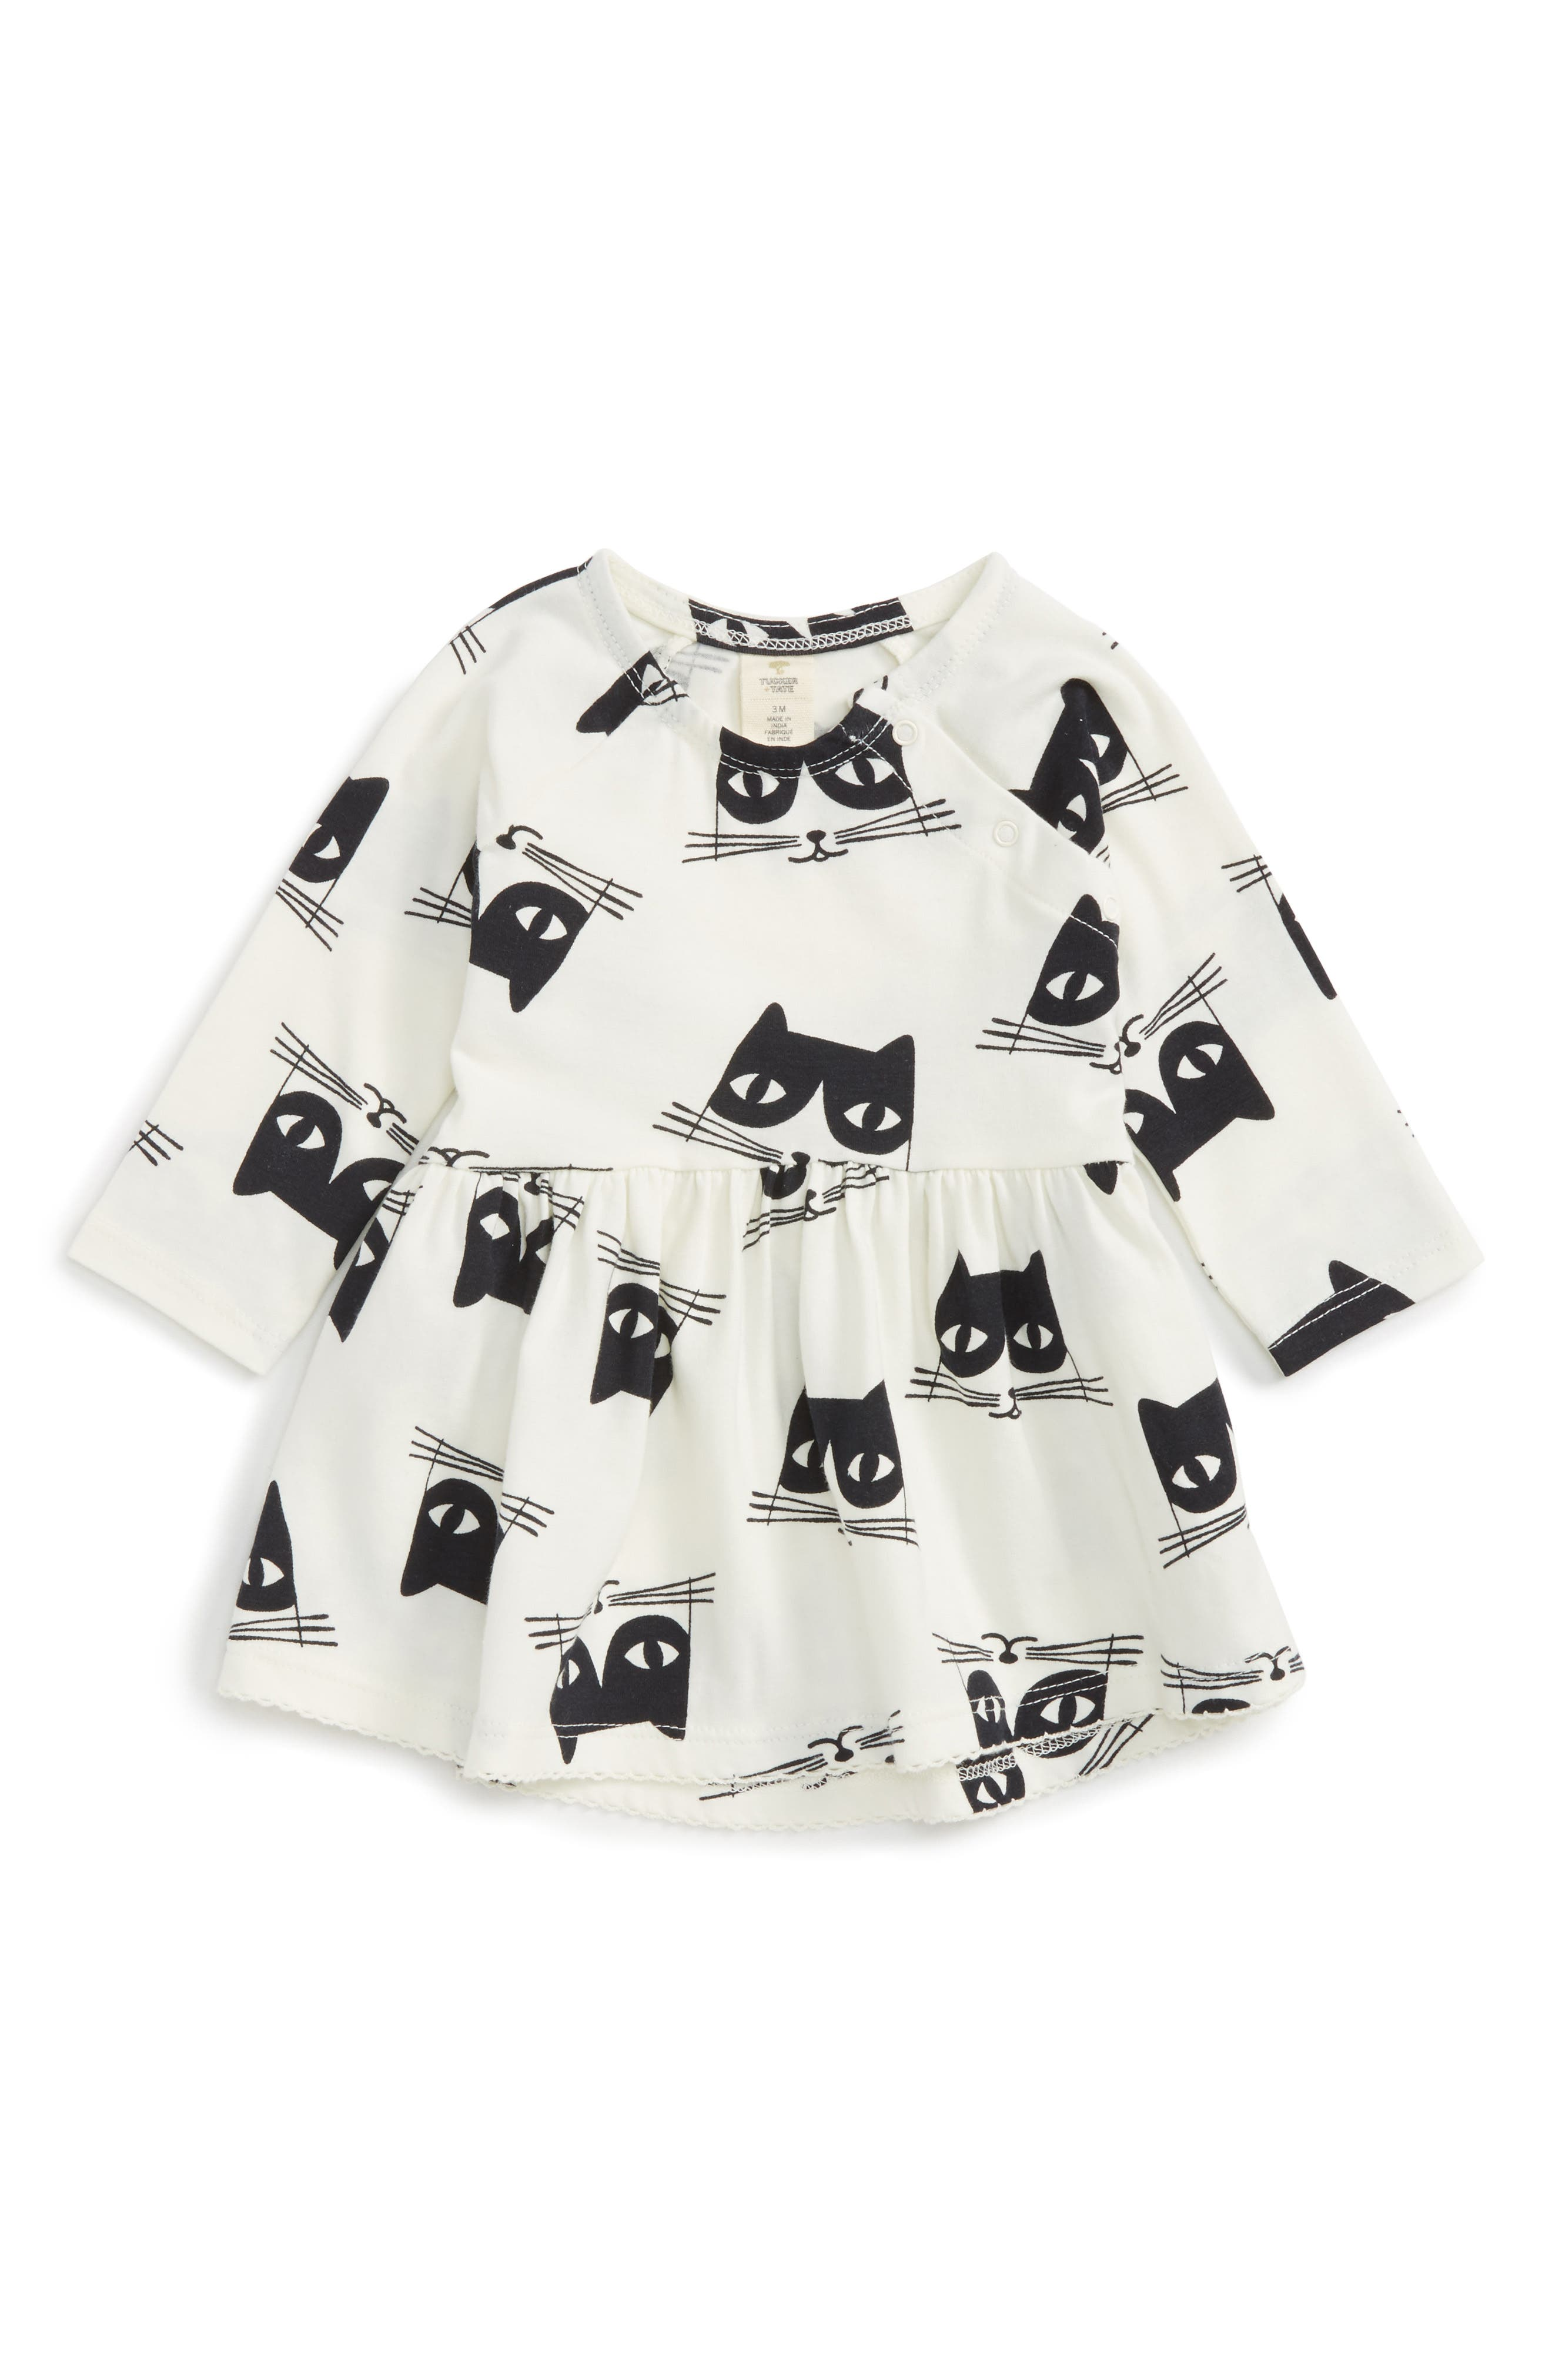 Alternate Image 1 Selected - Tucker + Tate Cat Print Dress (Baby Girls)